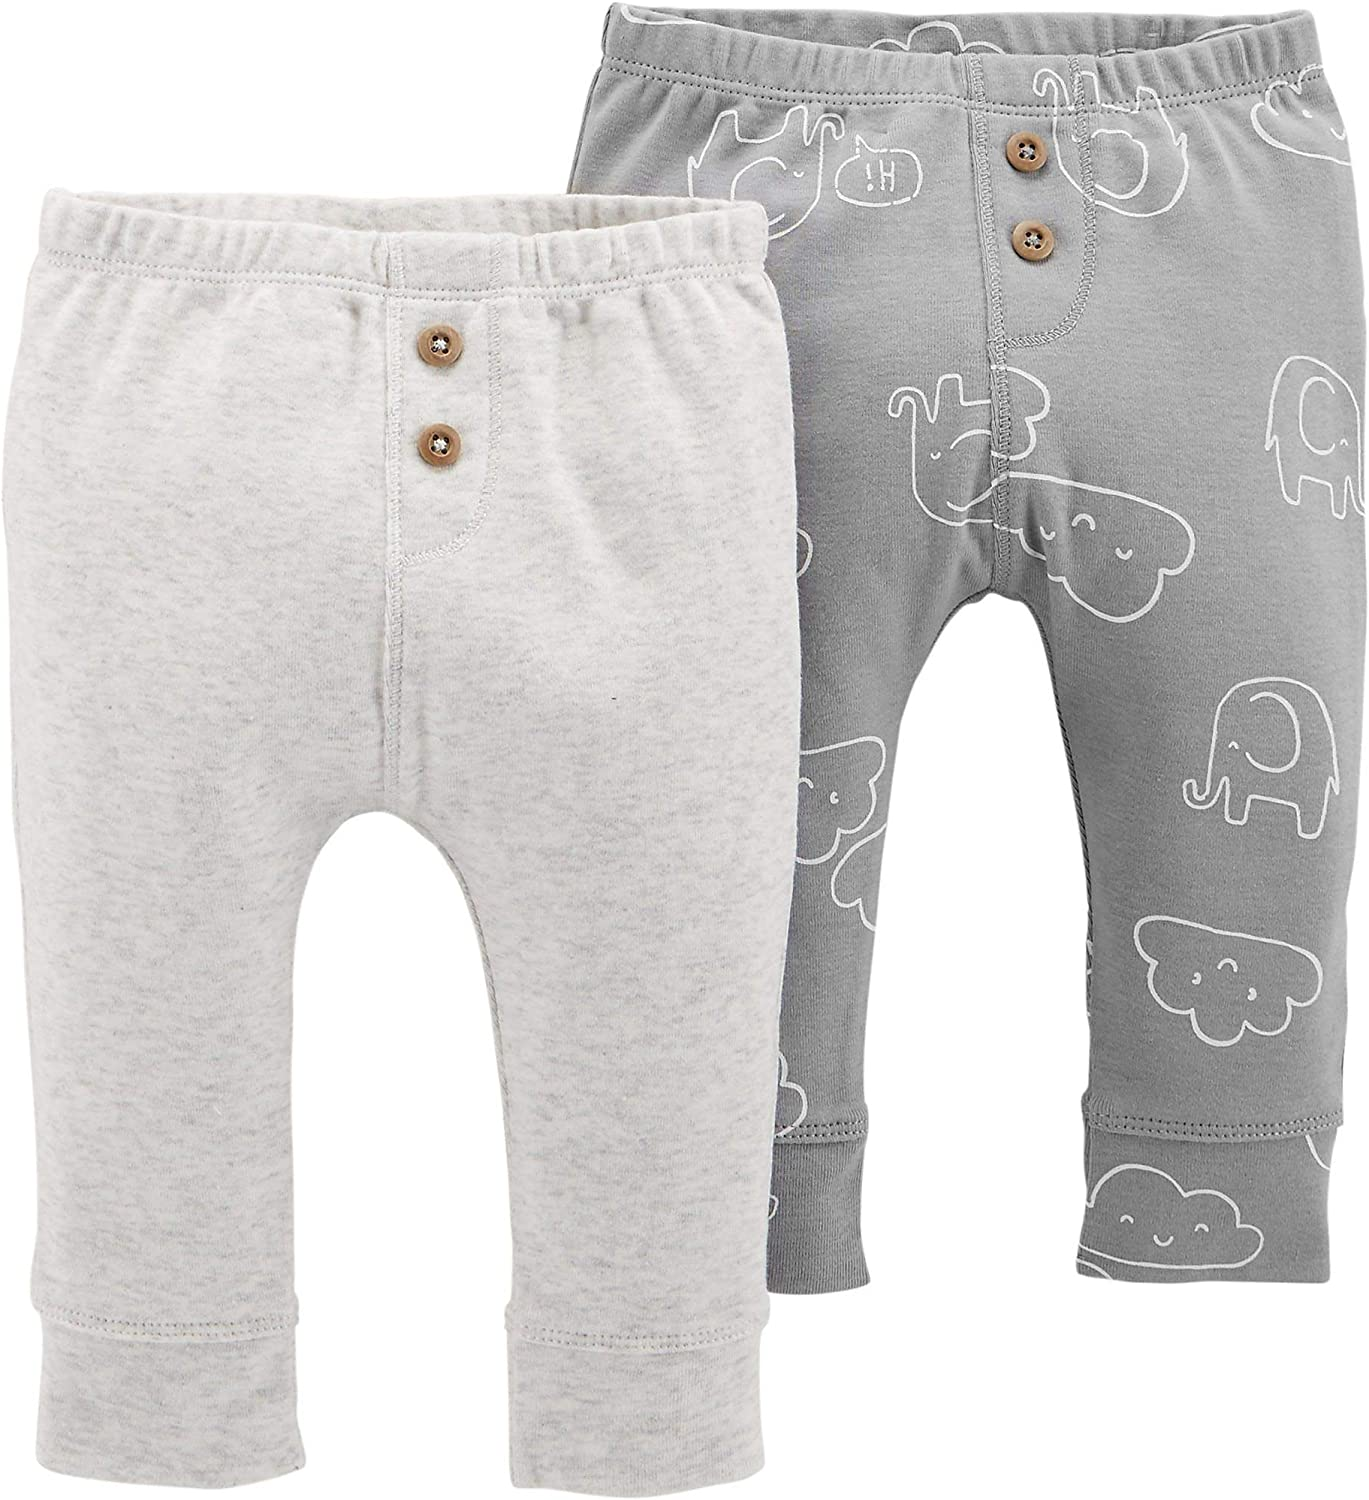 Carter's Baby Boys 2-Pack Pull-On Pants Cheap bargain Spring new work one after another